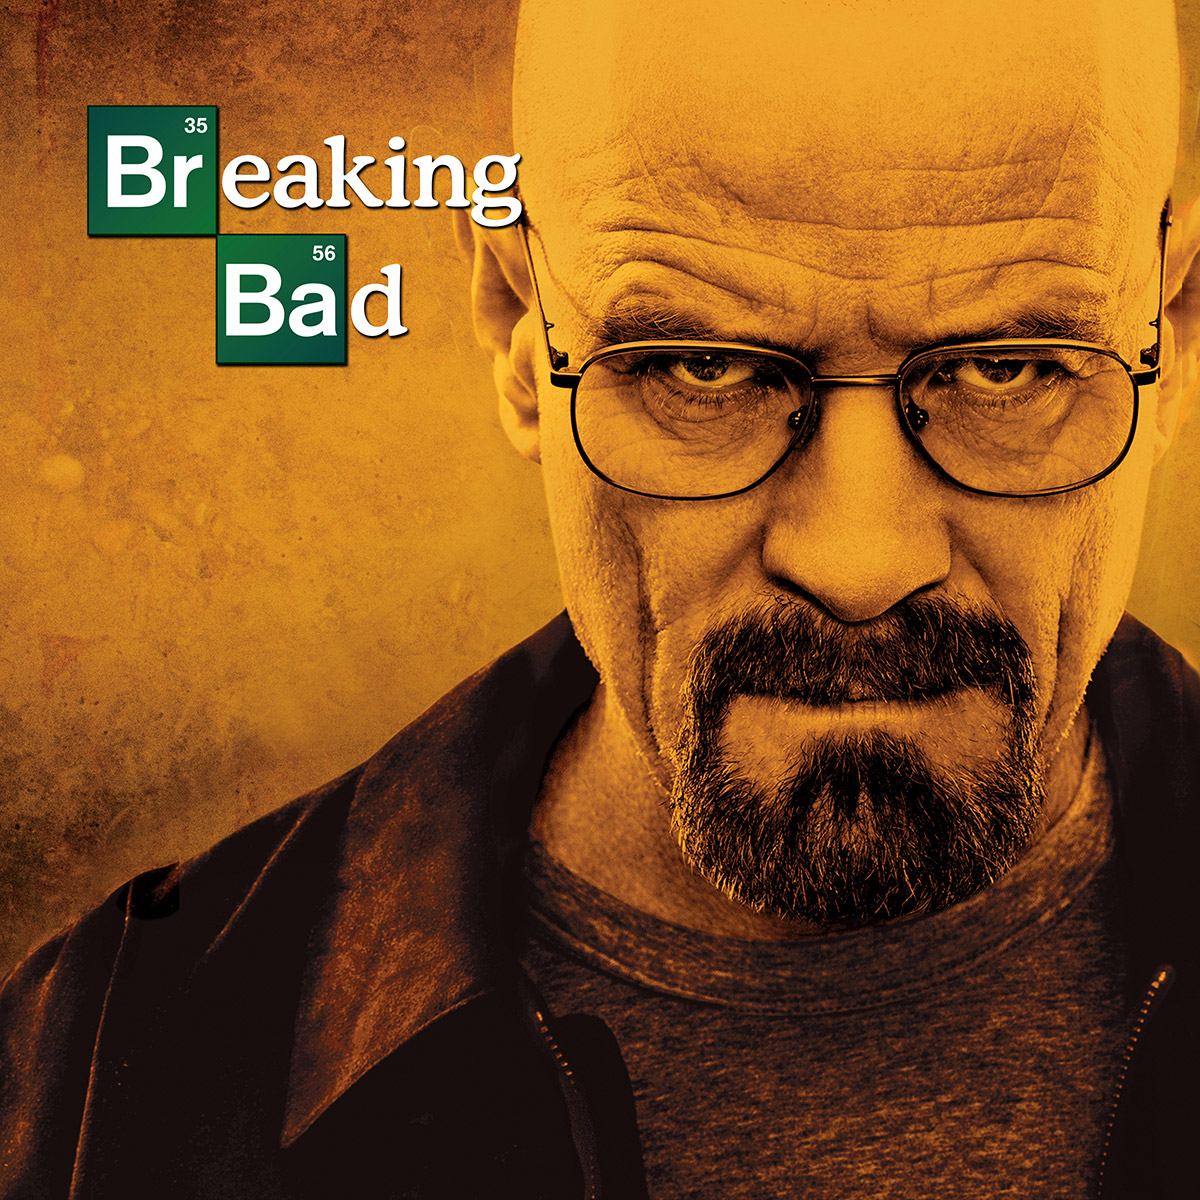 Serie ähnlich Breaking Bad